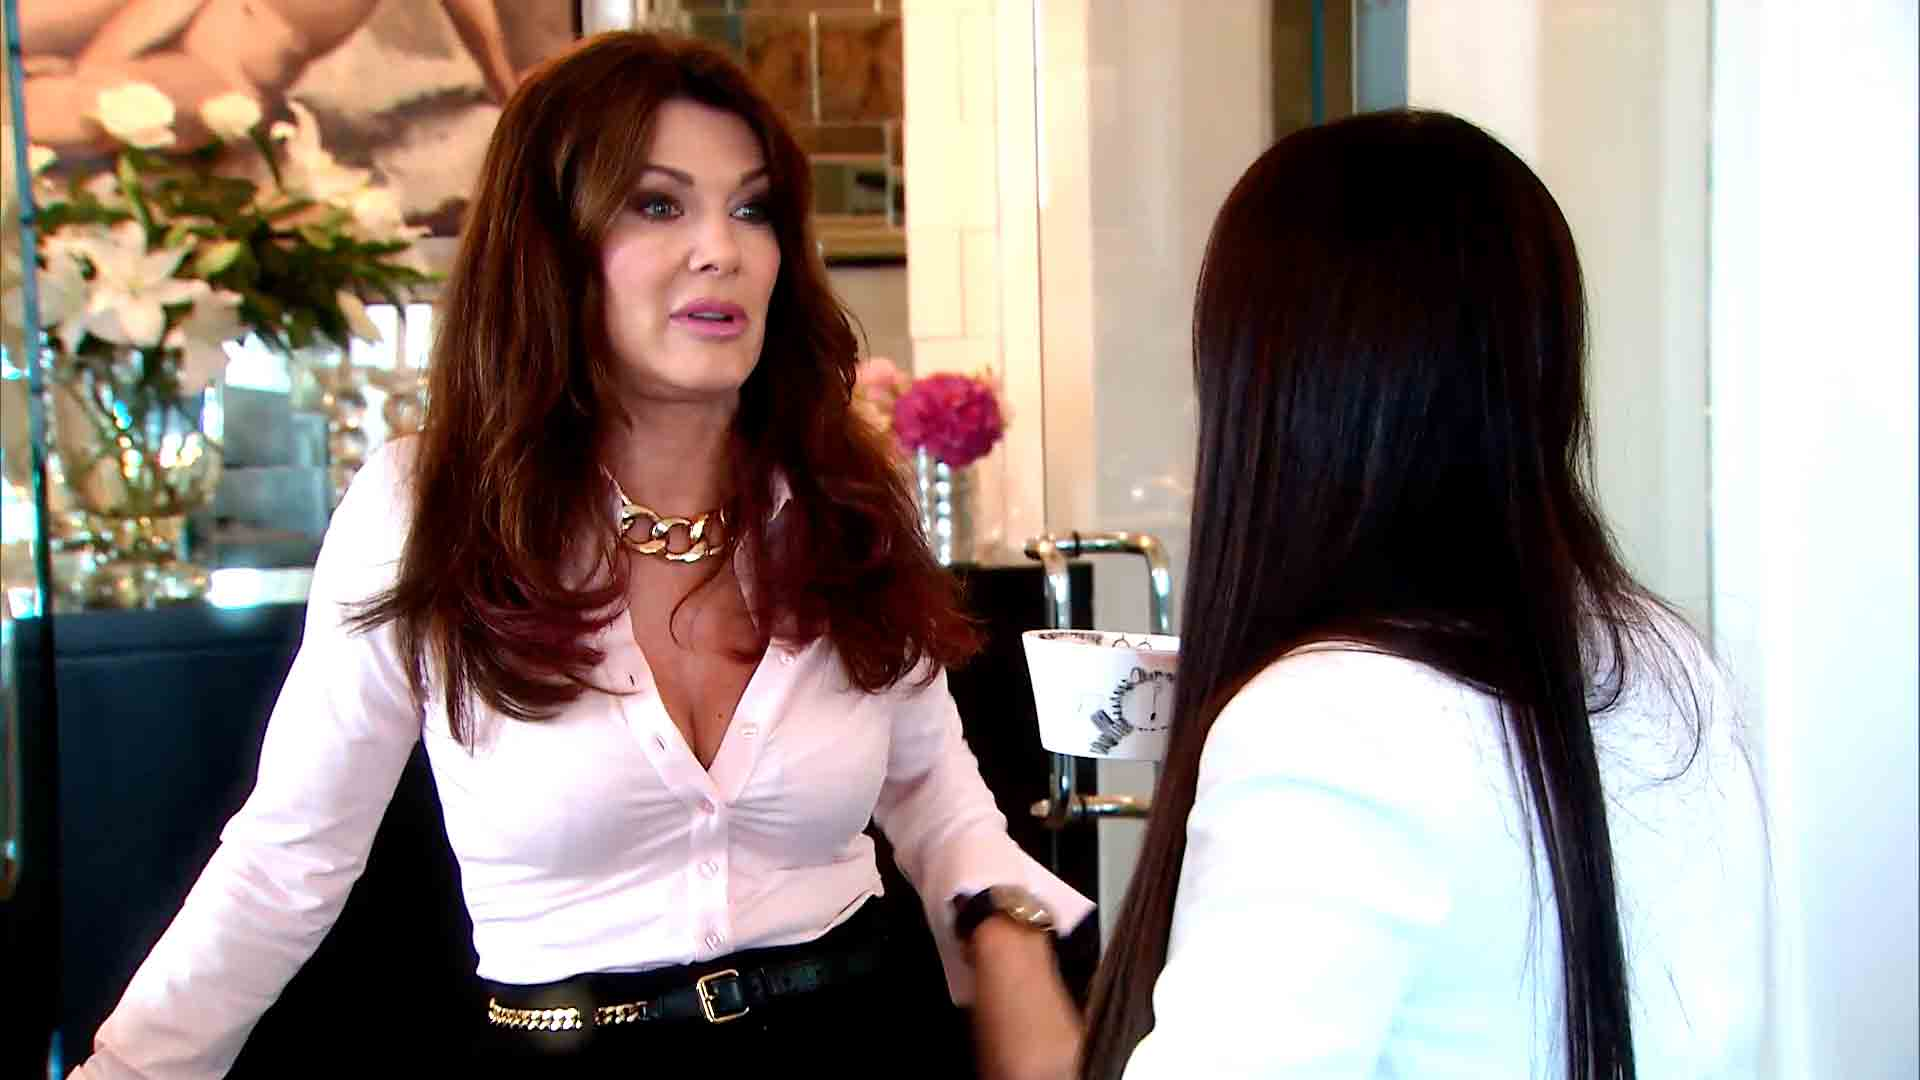 Lisa Vanderpump naked (73 fotos), photos Feet, Instagram, butt 2019